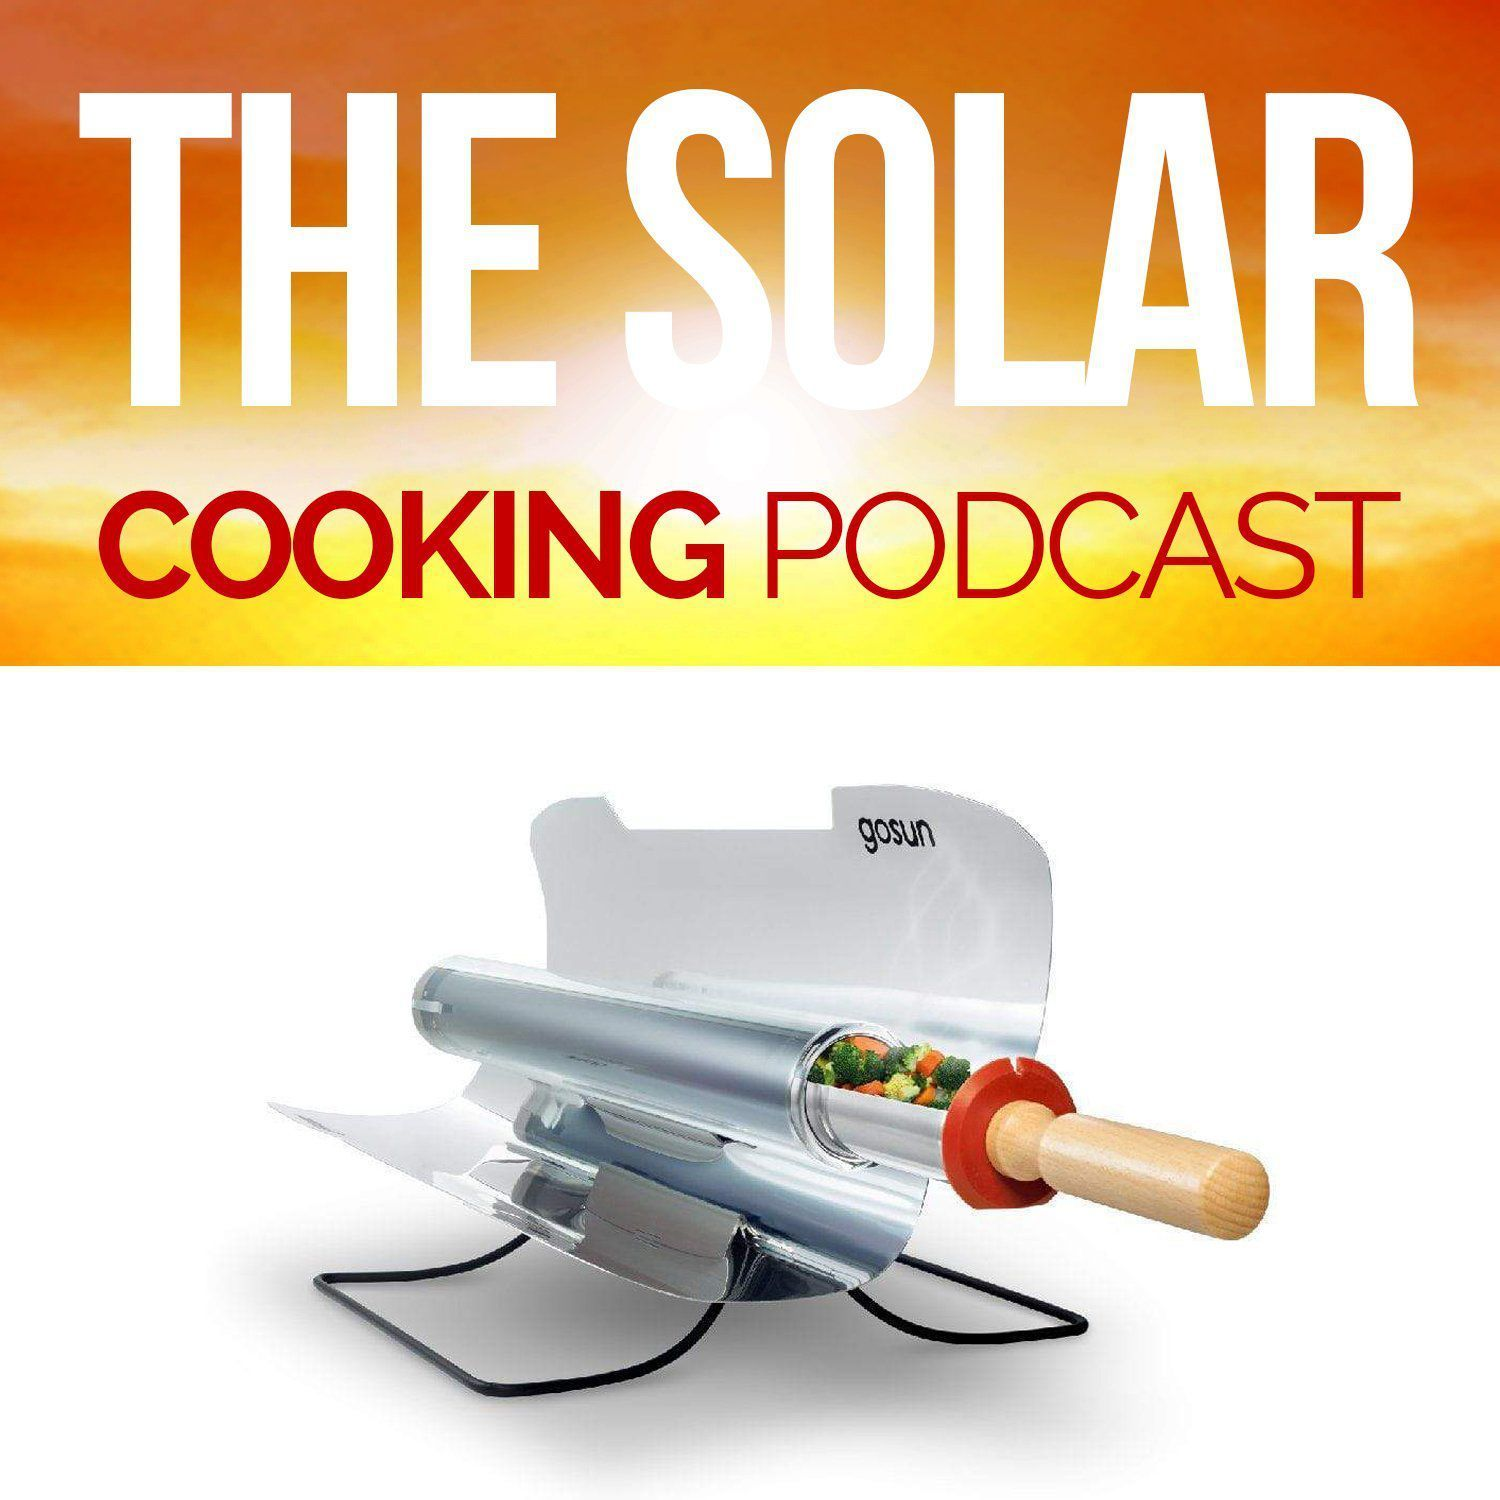 S1 Ep3: The Four Kinds of Solar Cookers (Box, Panel, Parabolic, Hybrid Solar/Electric)